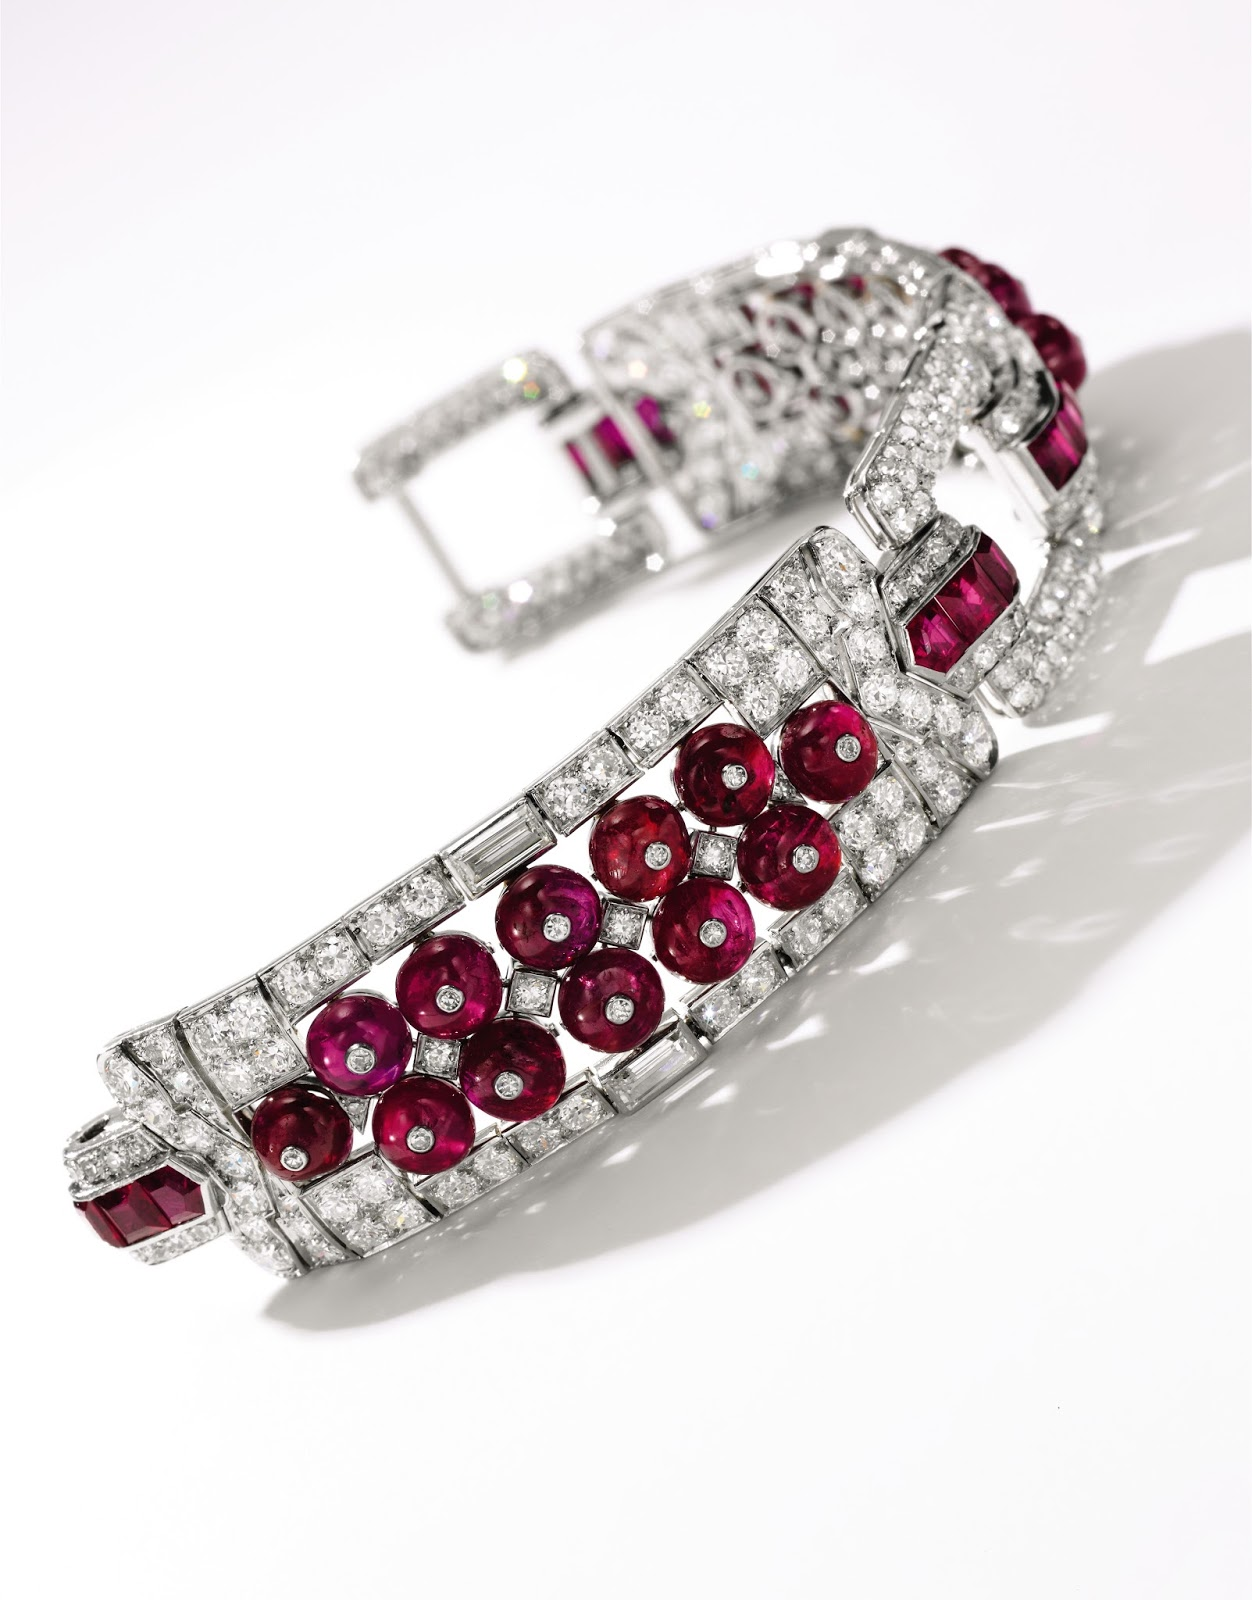 Lot 461 - Ruby and diamond bracelet, Cartier, circa 1920